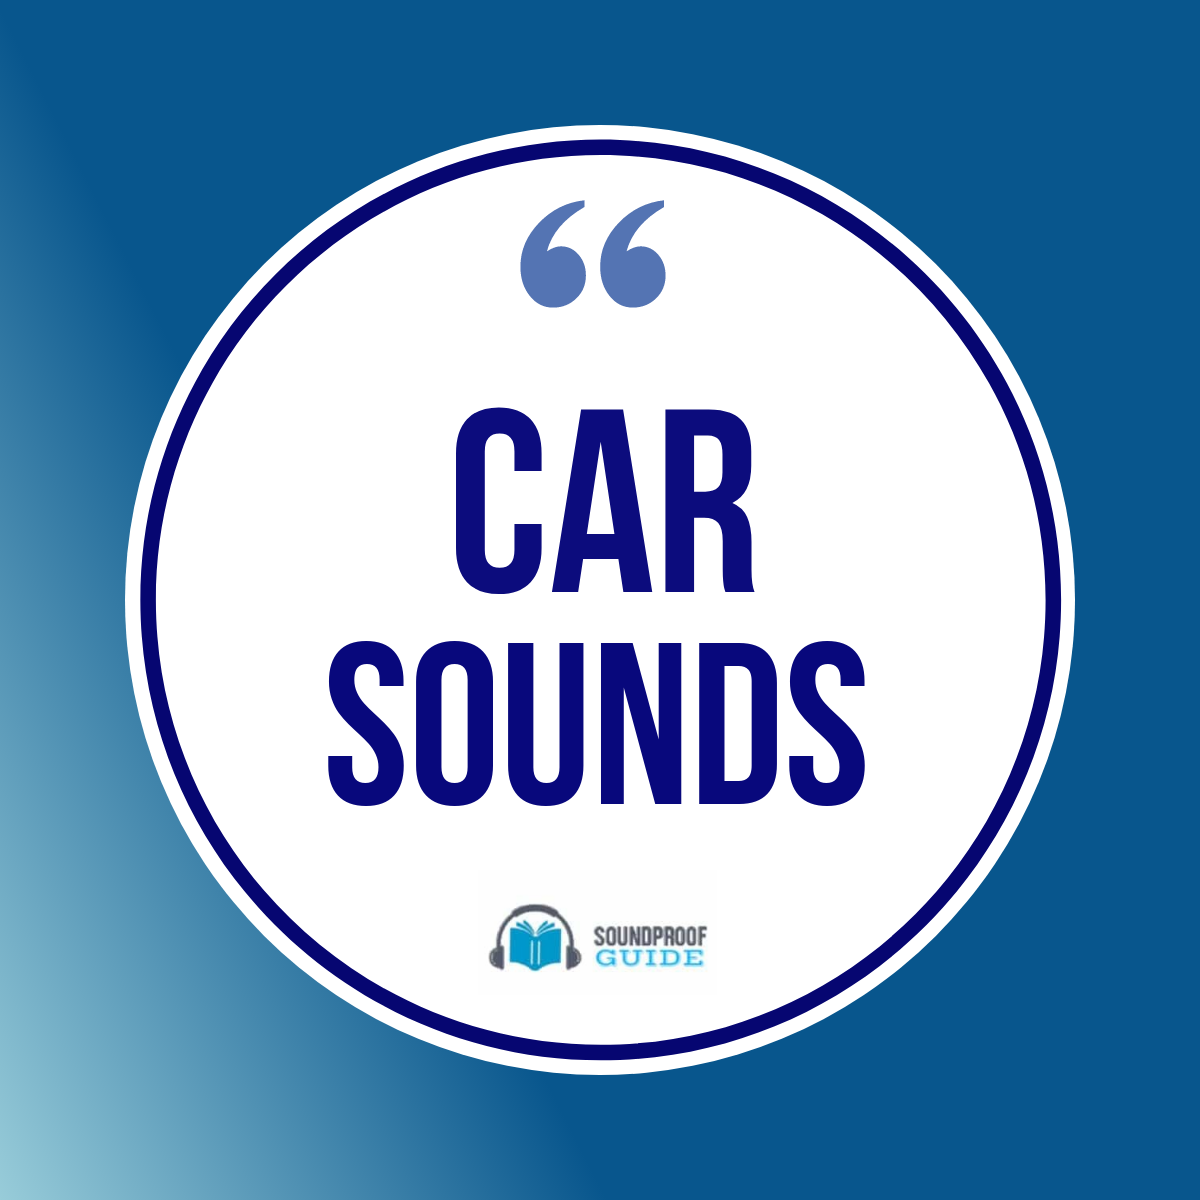 Pin by Soundproof Guide on Car Sounds (With images) Car